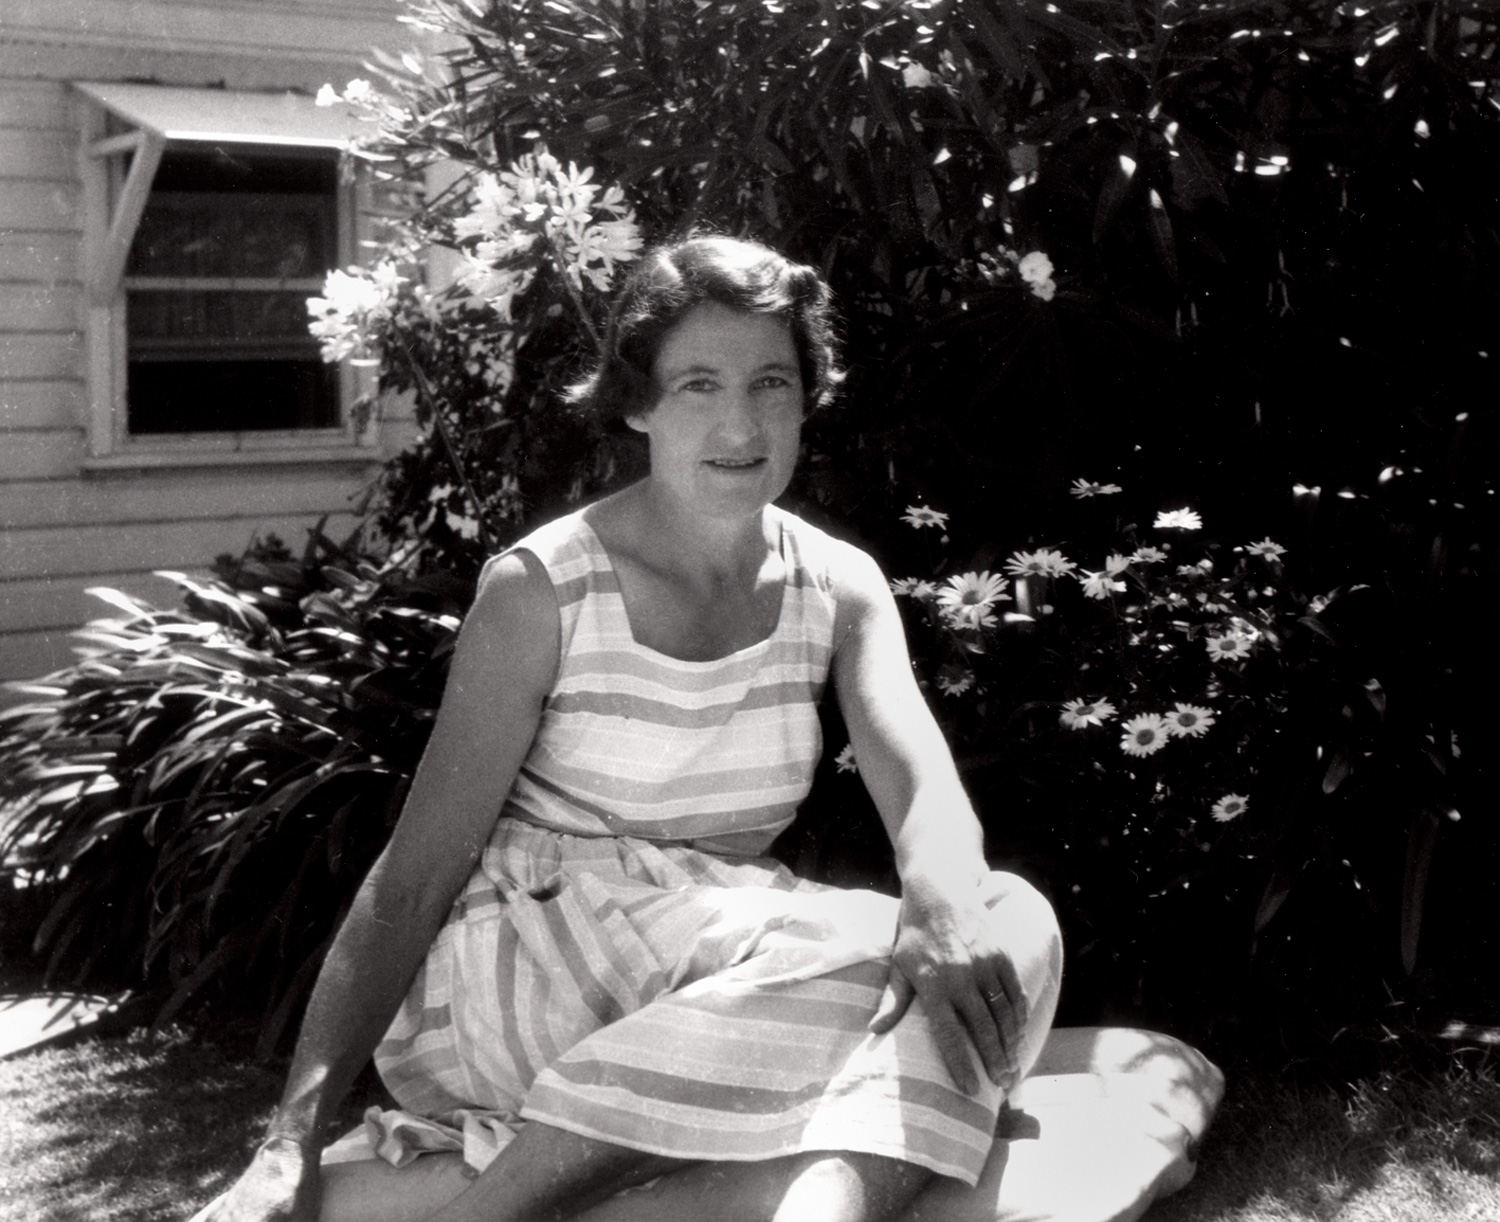 Olive-at-her-father's-house,-Newport,-c-1961.jpg